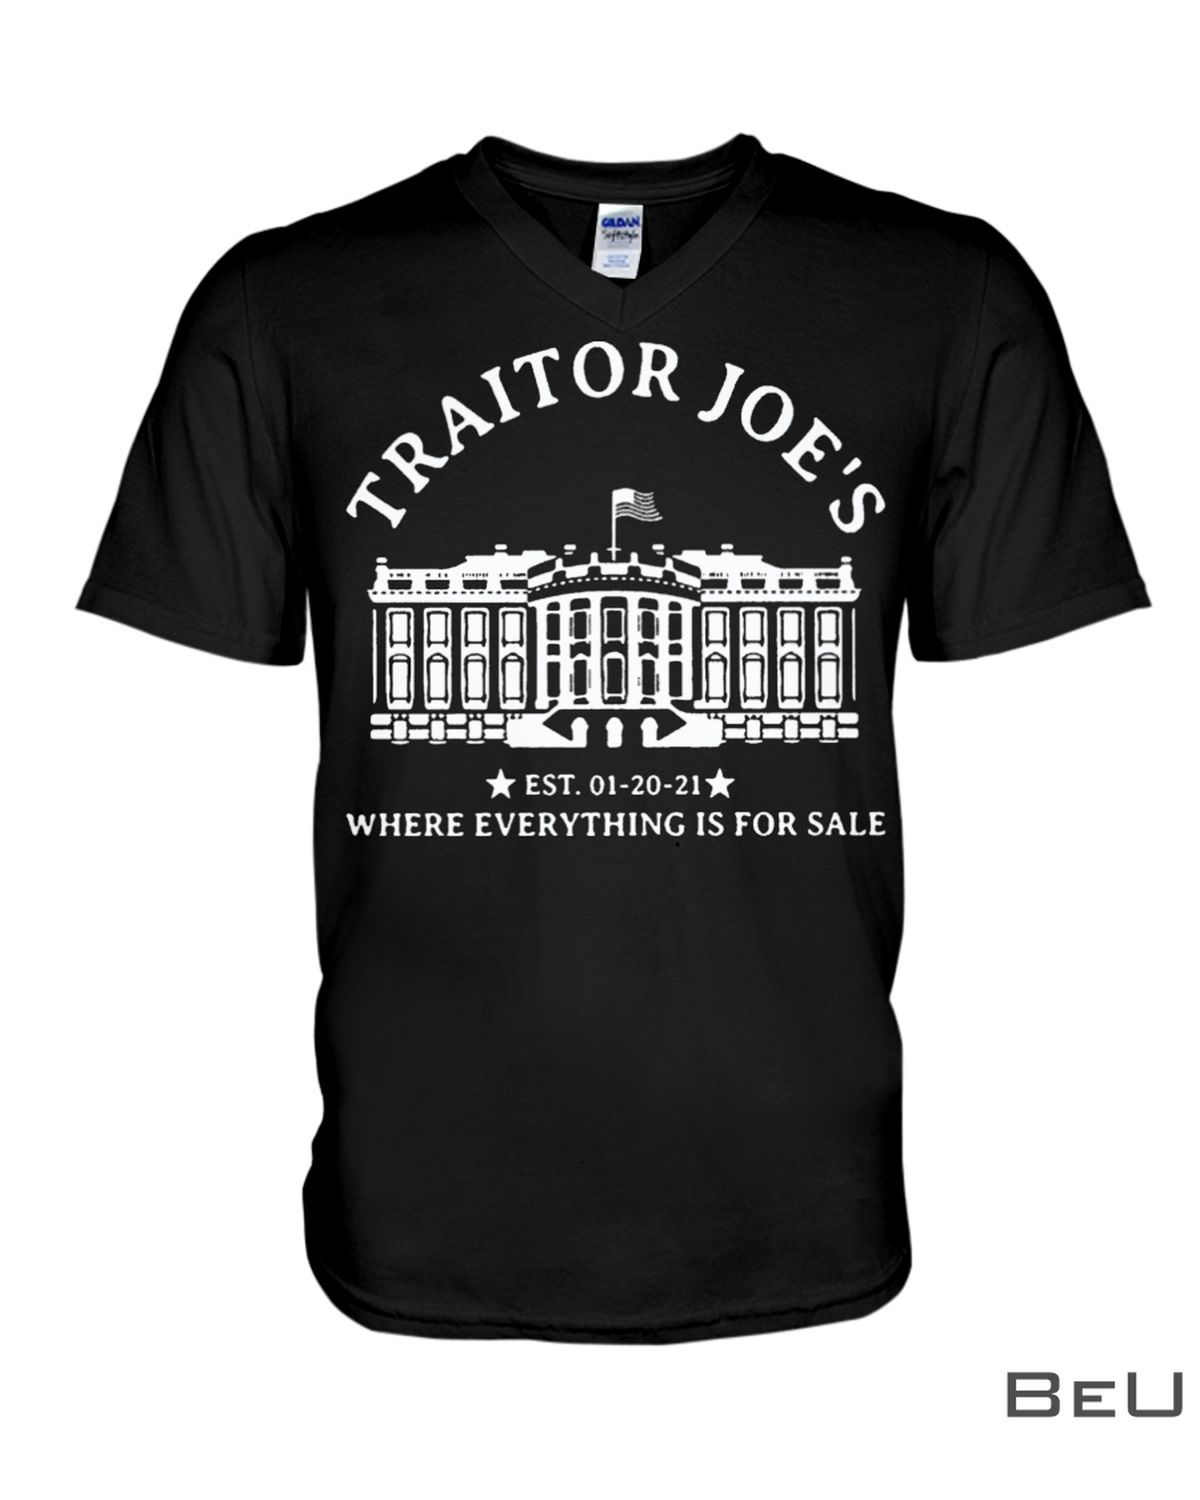 Traitor Joe's Est 01-20-21 Where Everything Is For Sale Shirtx